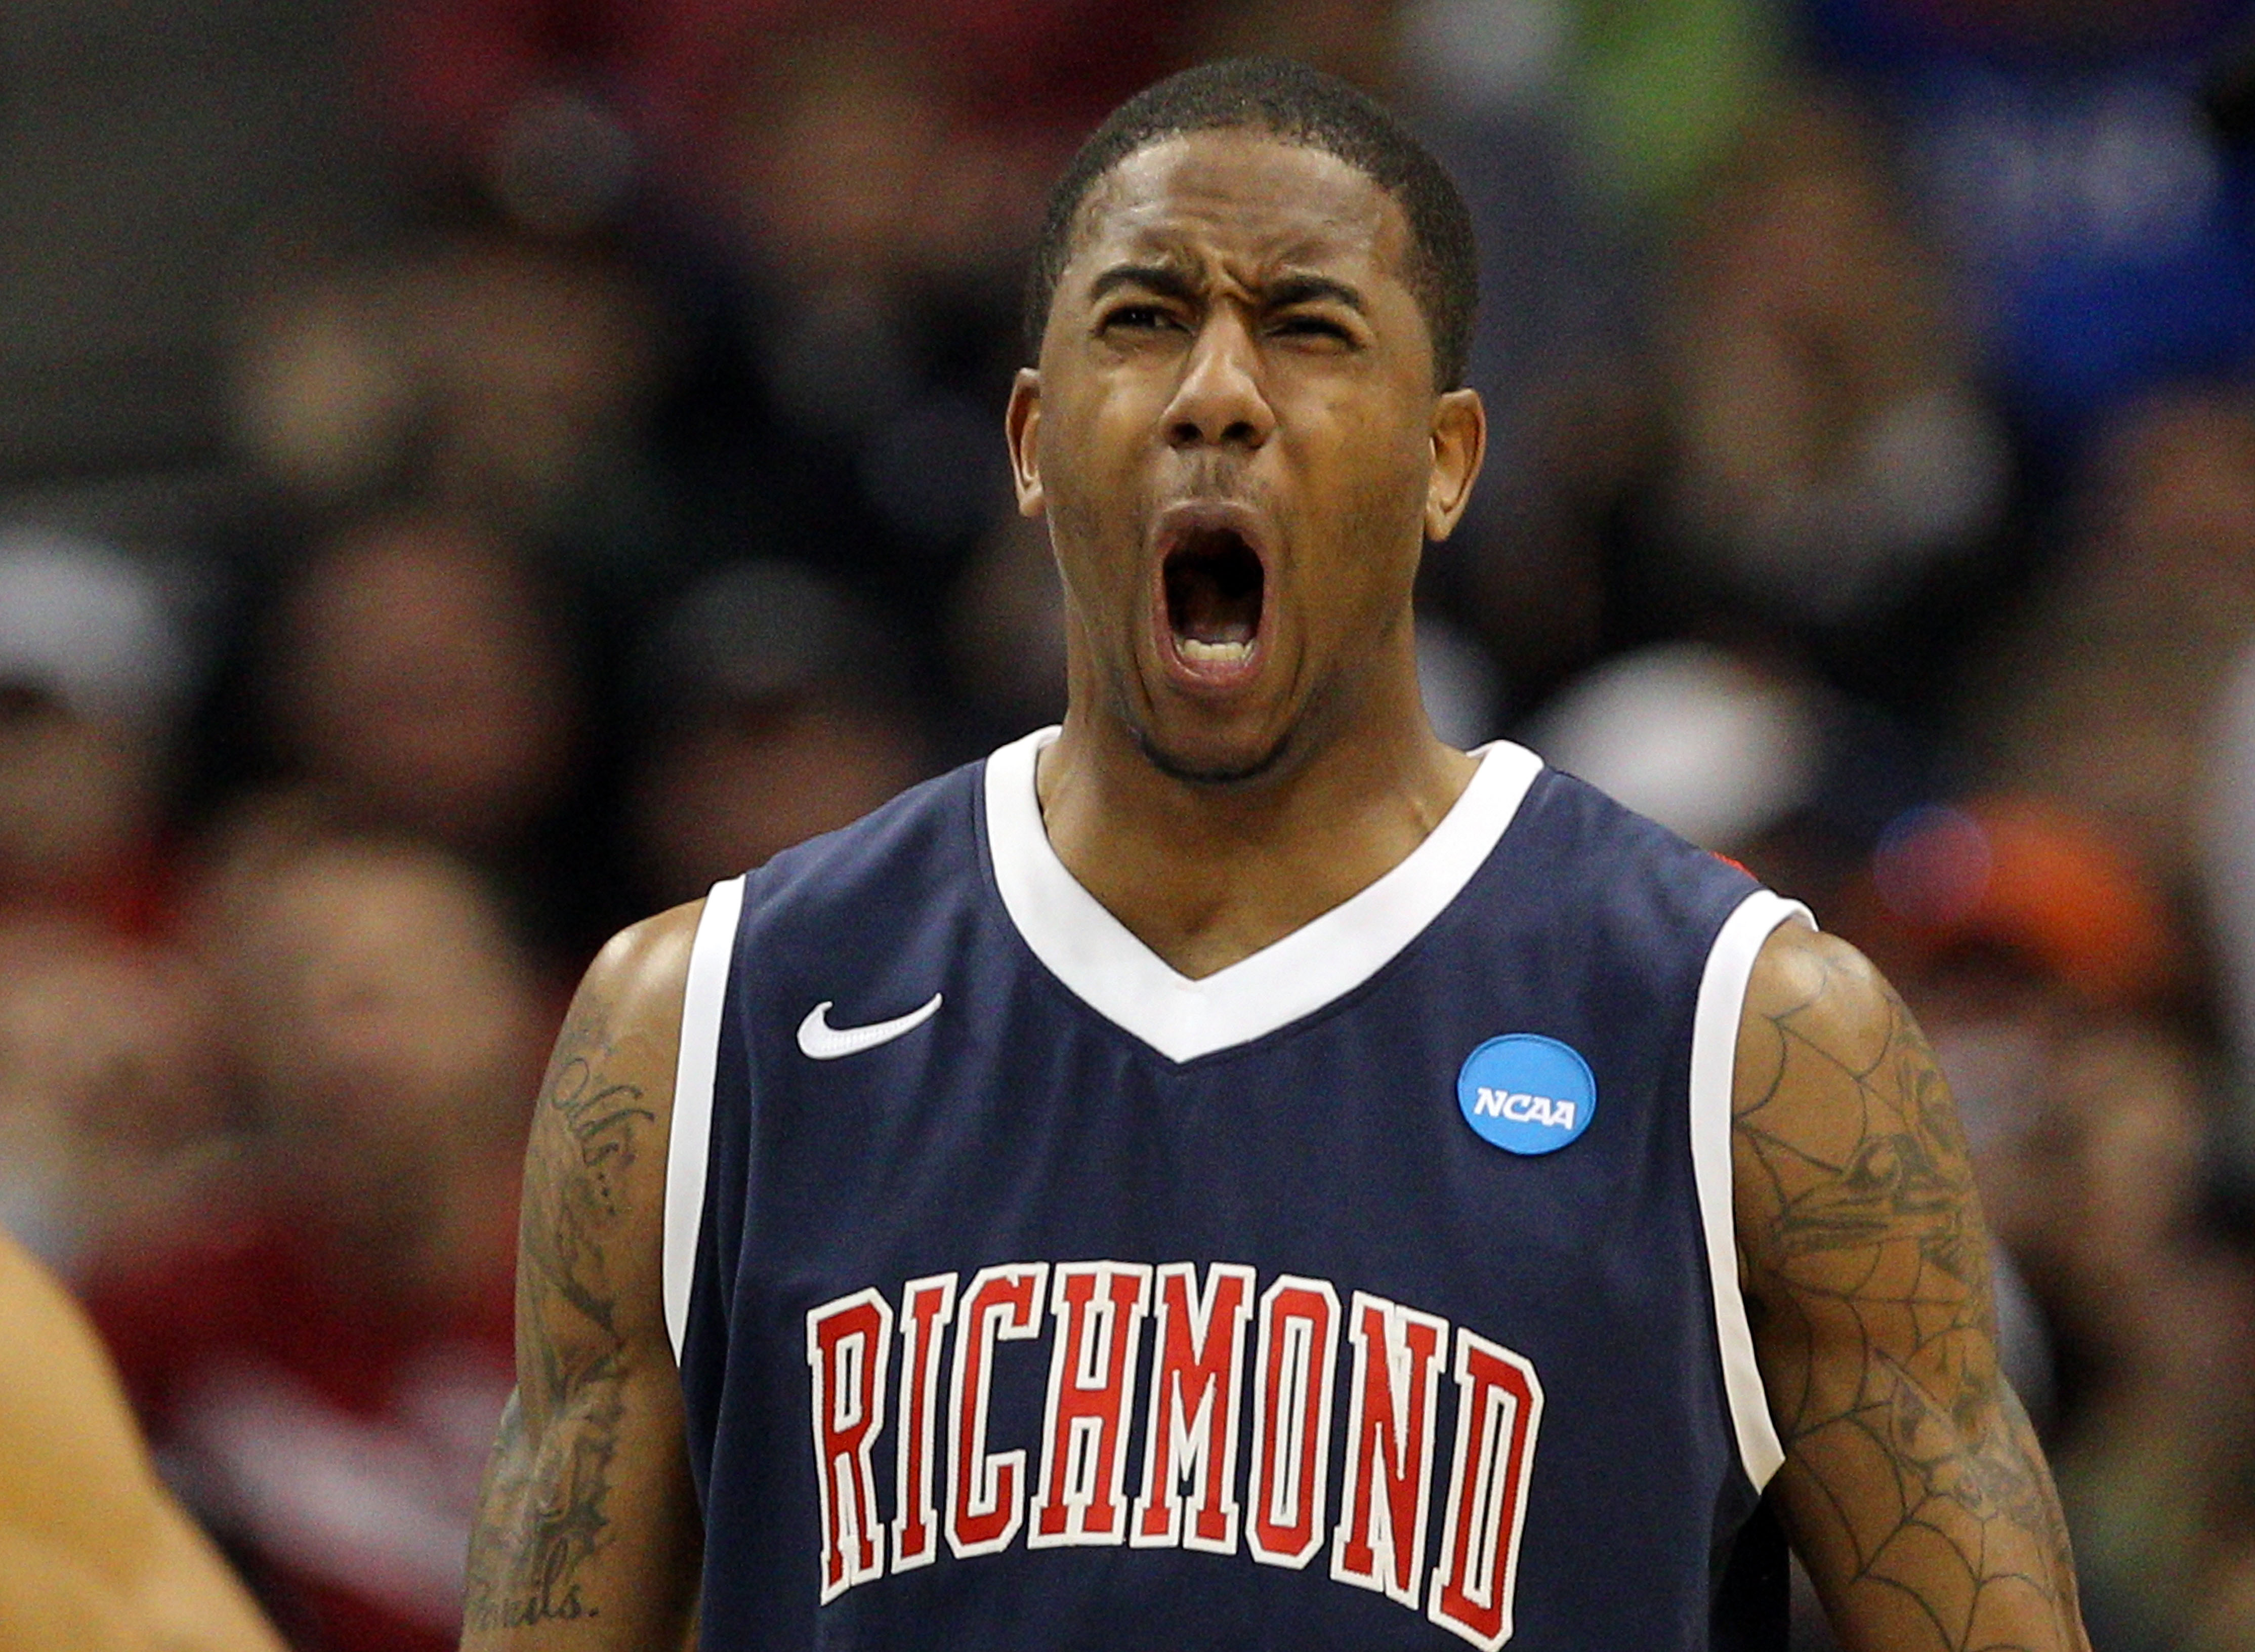 DENVER, CO - MARCH 17:  Darrius Garrett #1 of the Richmond Spiders reacts after a play against the Vanderbilt Commodores during the second round of the 2011 NCAA men's basketball tournament at Pepsi Center on March 17, 2011 in Denver, Colorado.  (Photo by